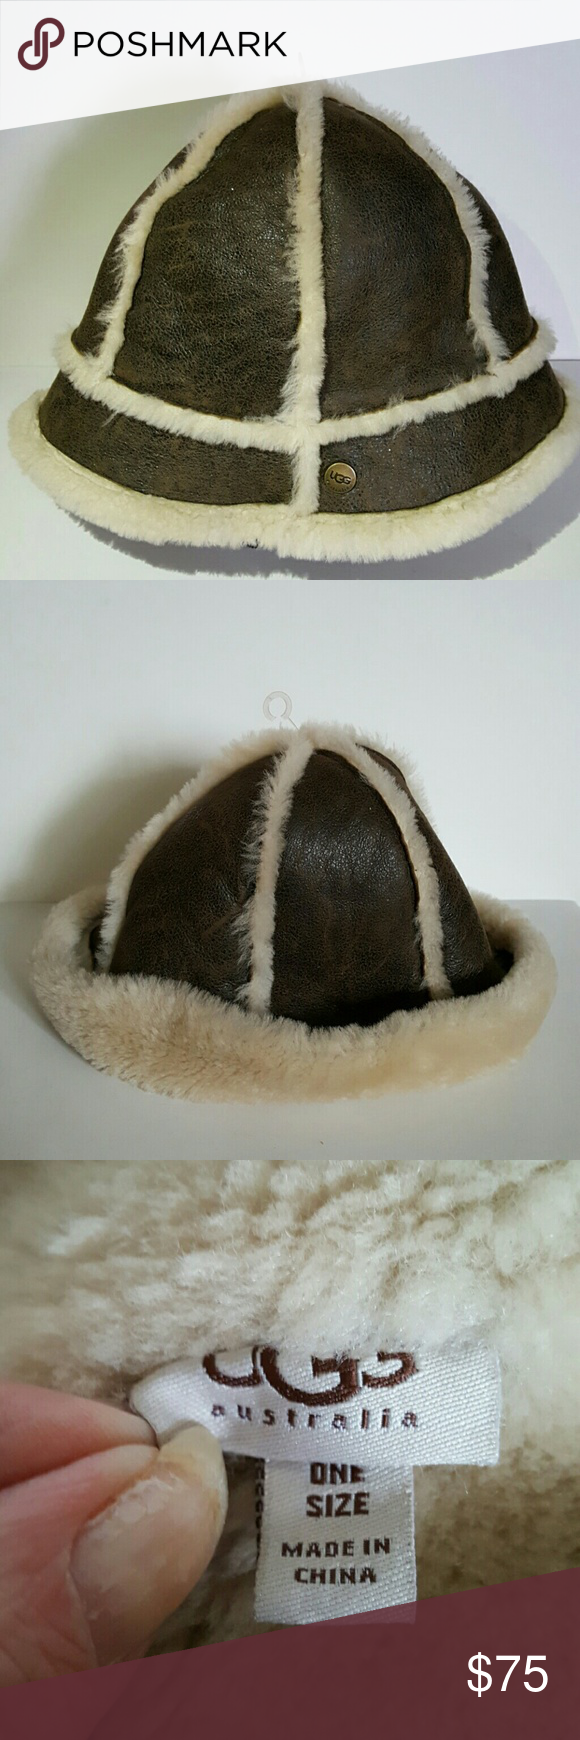 UGG HAT Classic UGG shearling sheepskin bucket hat with soft shearling interior and spill out seams. Very comfortable warm hat in great condition.  Ugg emblem on front. Wear rolled up or straight down. Like new condition. UGG Accessories Hats